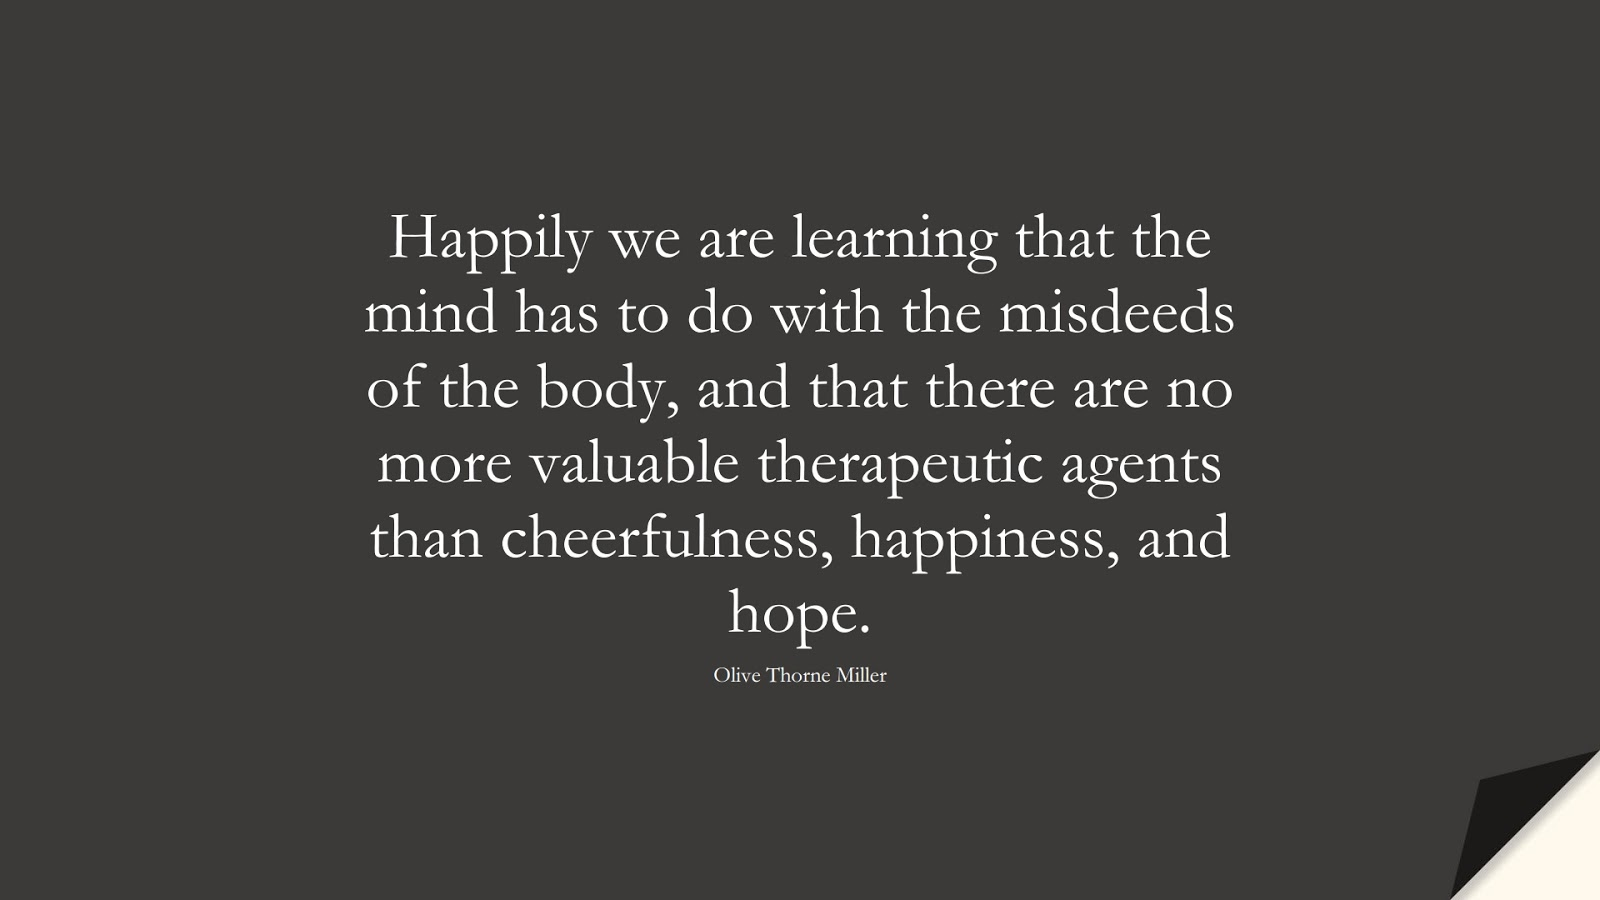 Happily we are learning that the mind has to do with the misdeeds of the body, and that there are no more valuable therapeutic agents than cheerfulness, happiness, and hope. (Olive Thorne Miller);  #HealthQuotes